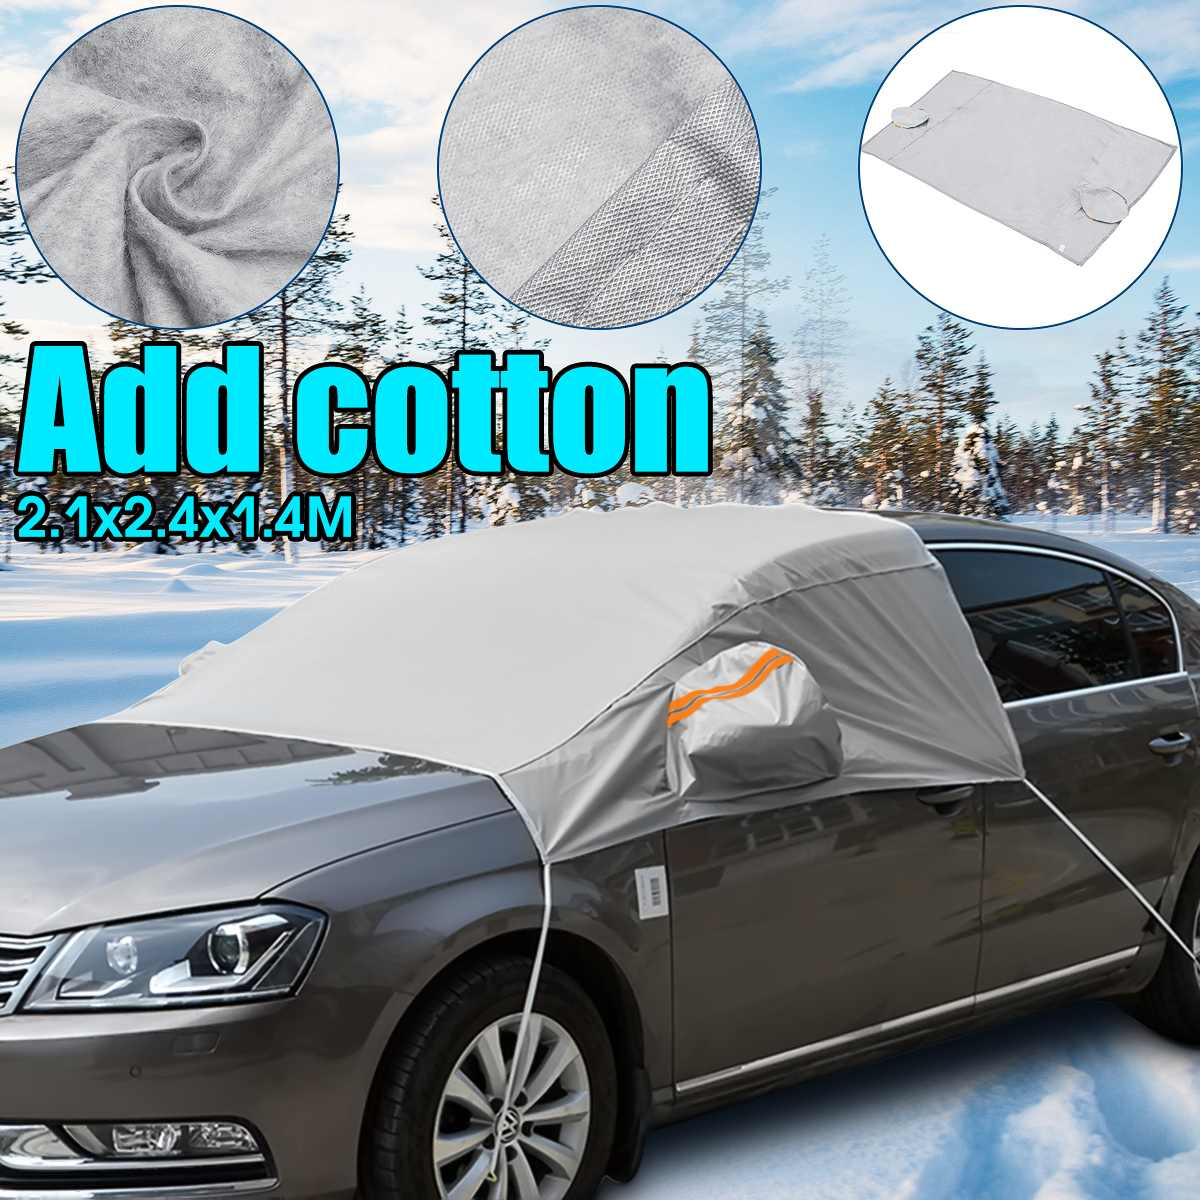 Forgrace Car Windshield Snow Cover Large /& 3-Layer Thick Fits Usual Car Straps Windproof Outdoor Car Snow Covers Keeps Ice Snow Off